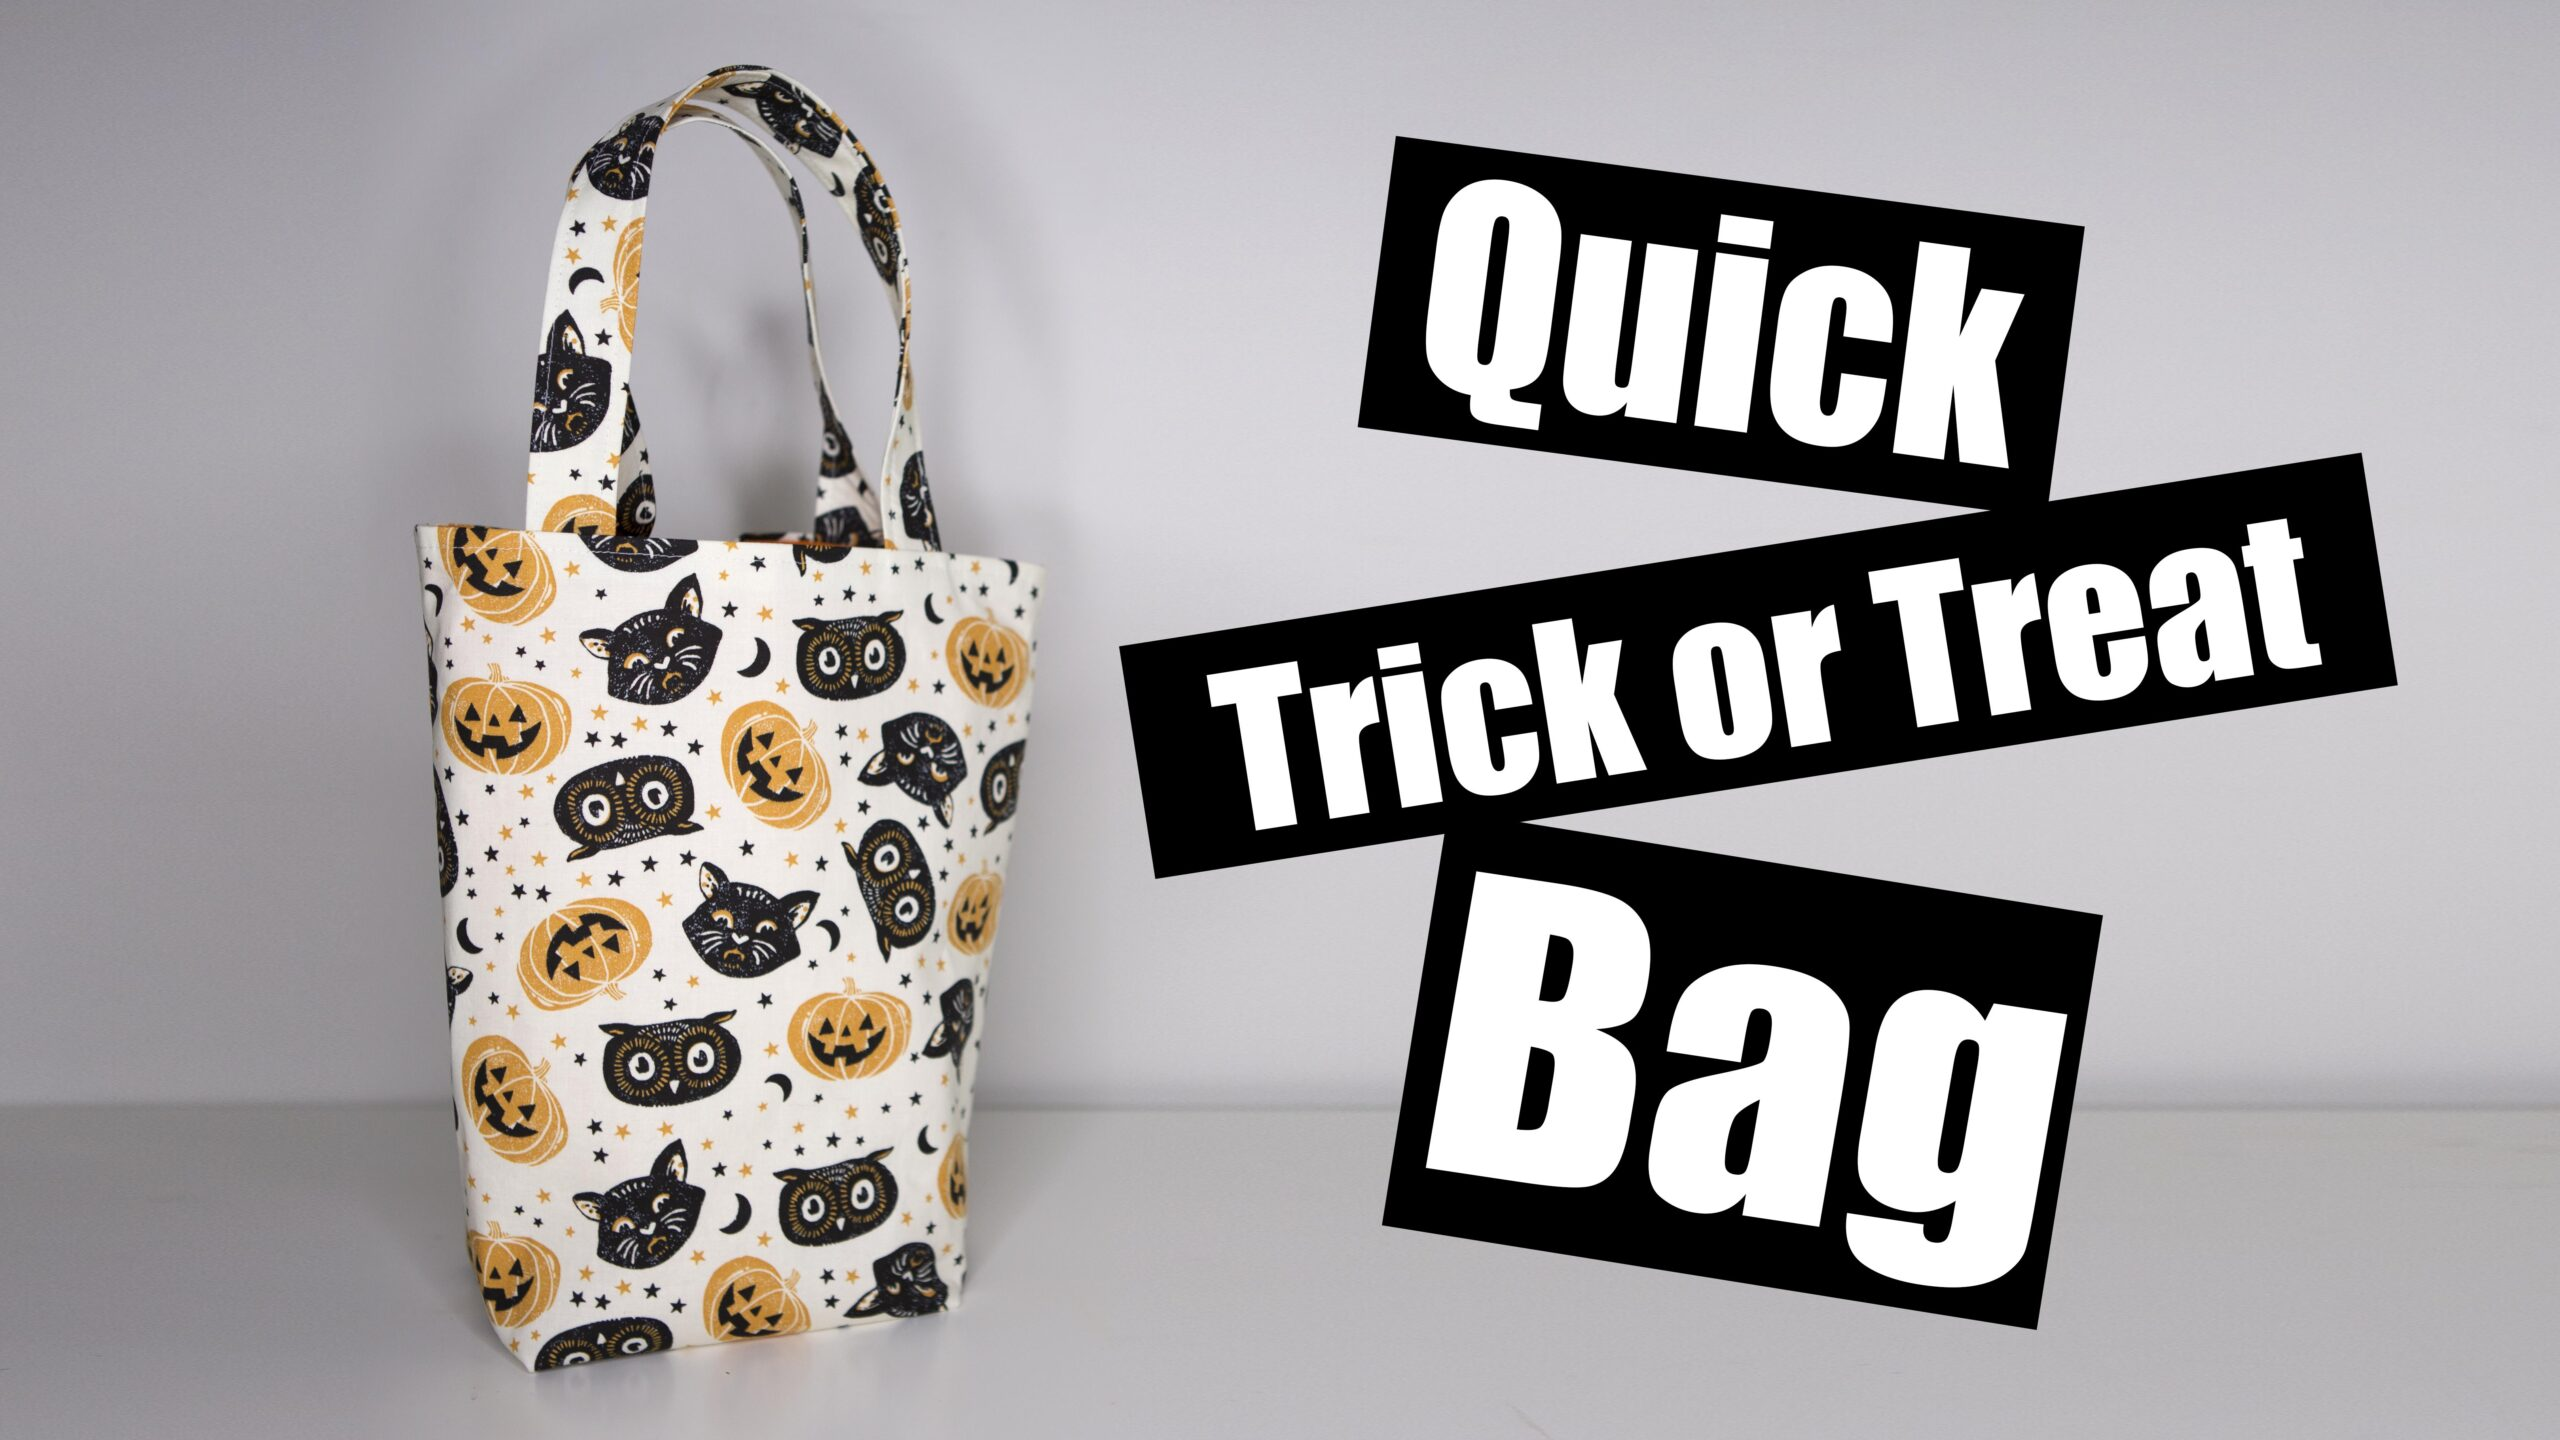 Quick trick or treat bag